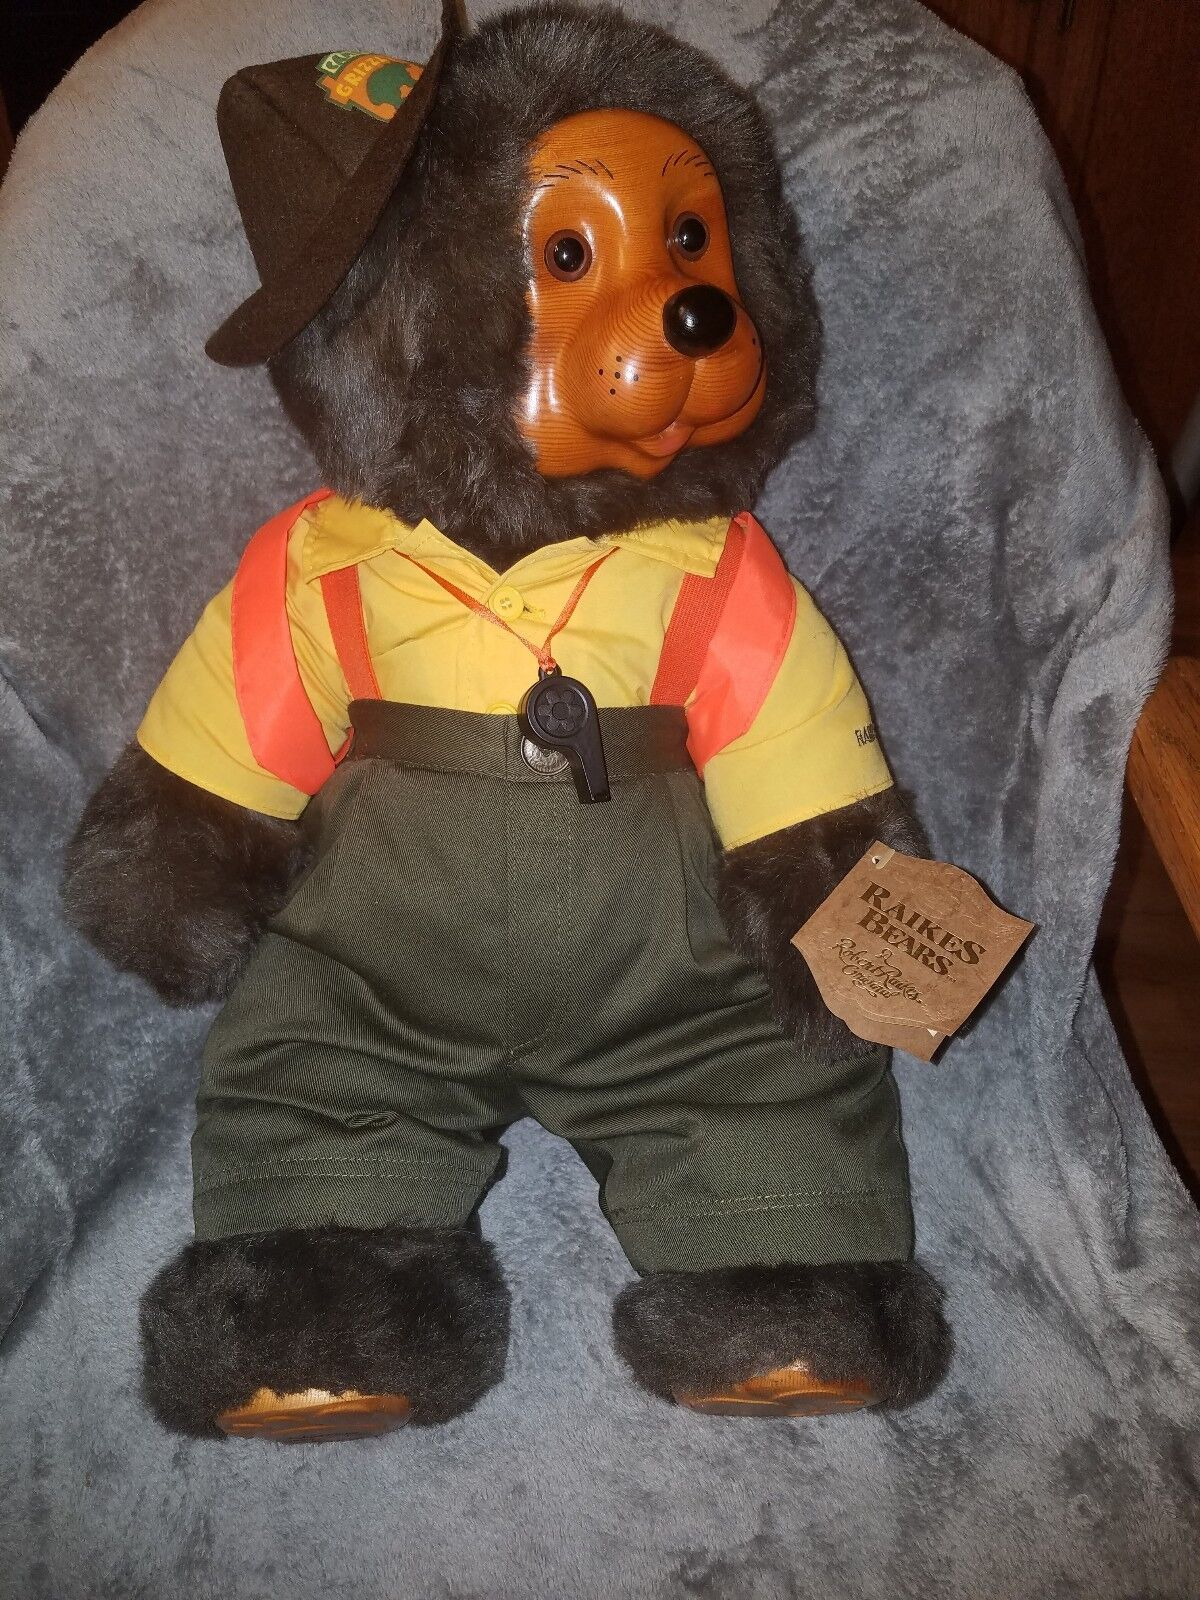 Raikes Bears - 1990 Grizzly Camp - Wendell w  COA & Original Box - Signed